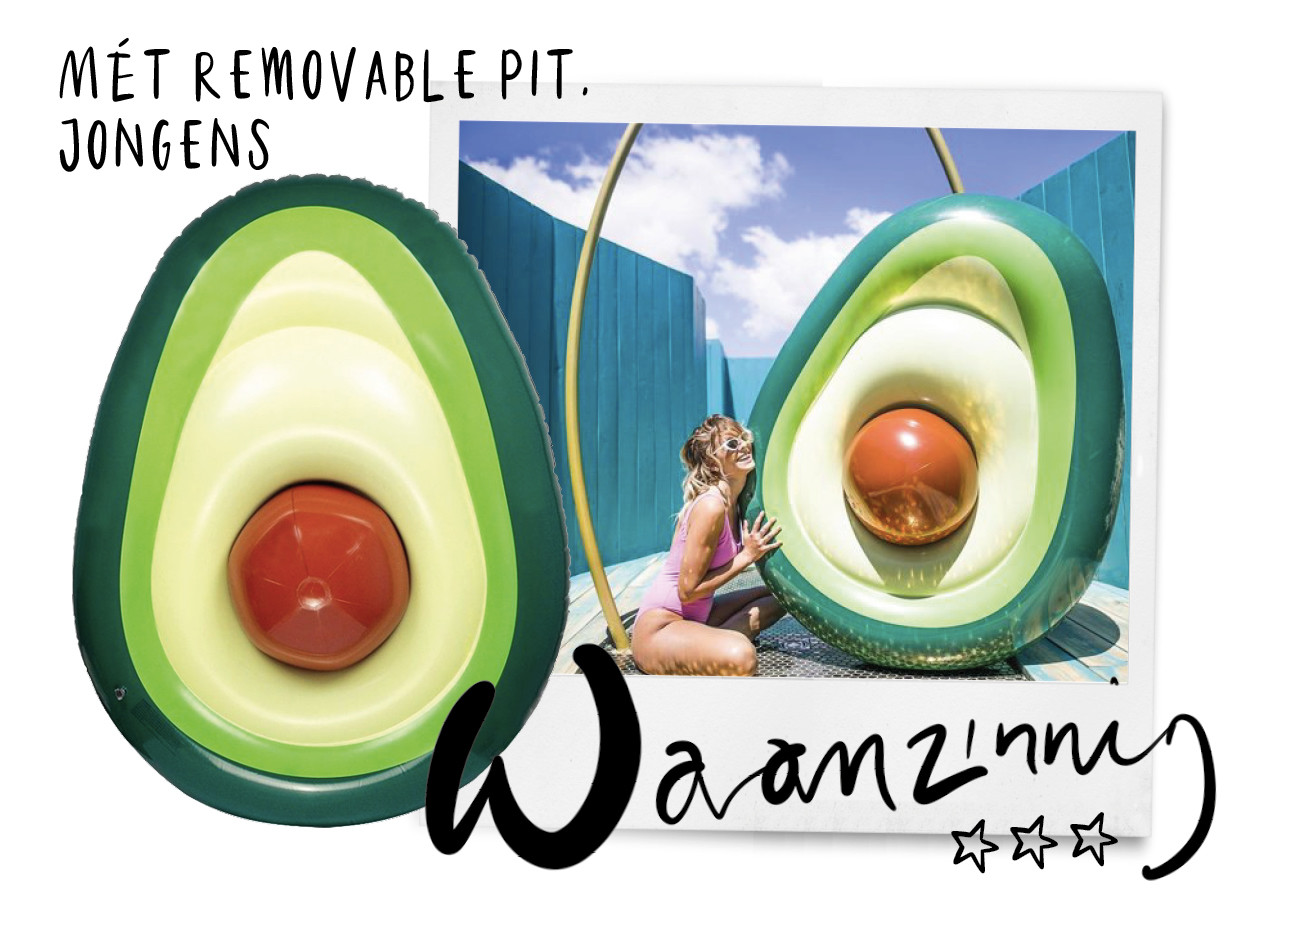 inflatable avocado with removable pit, om in de zomer rond te dobberen, swimming pool